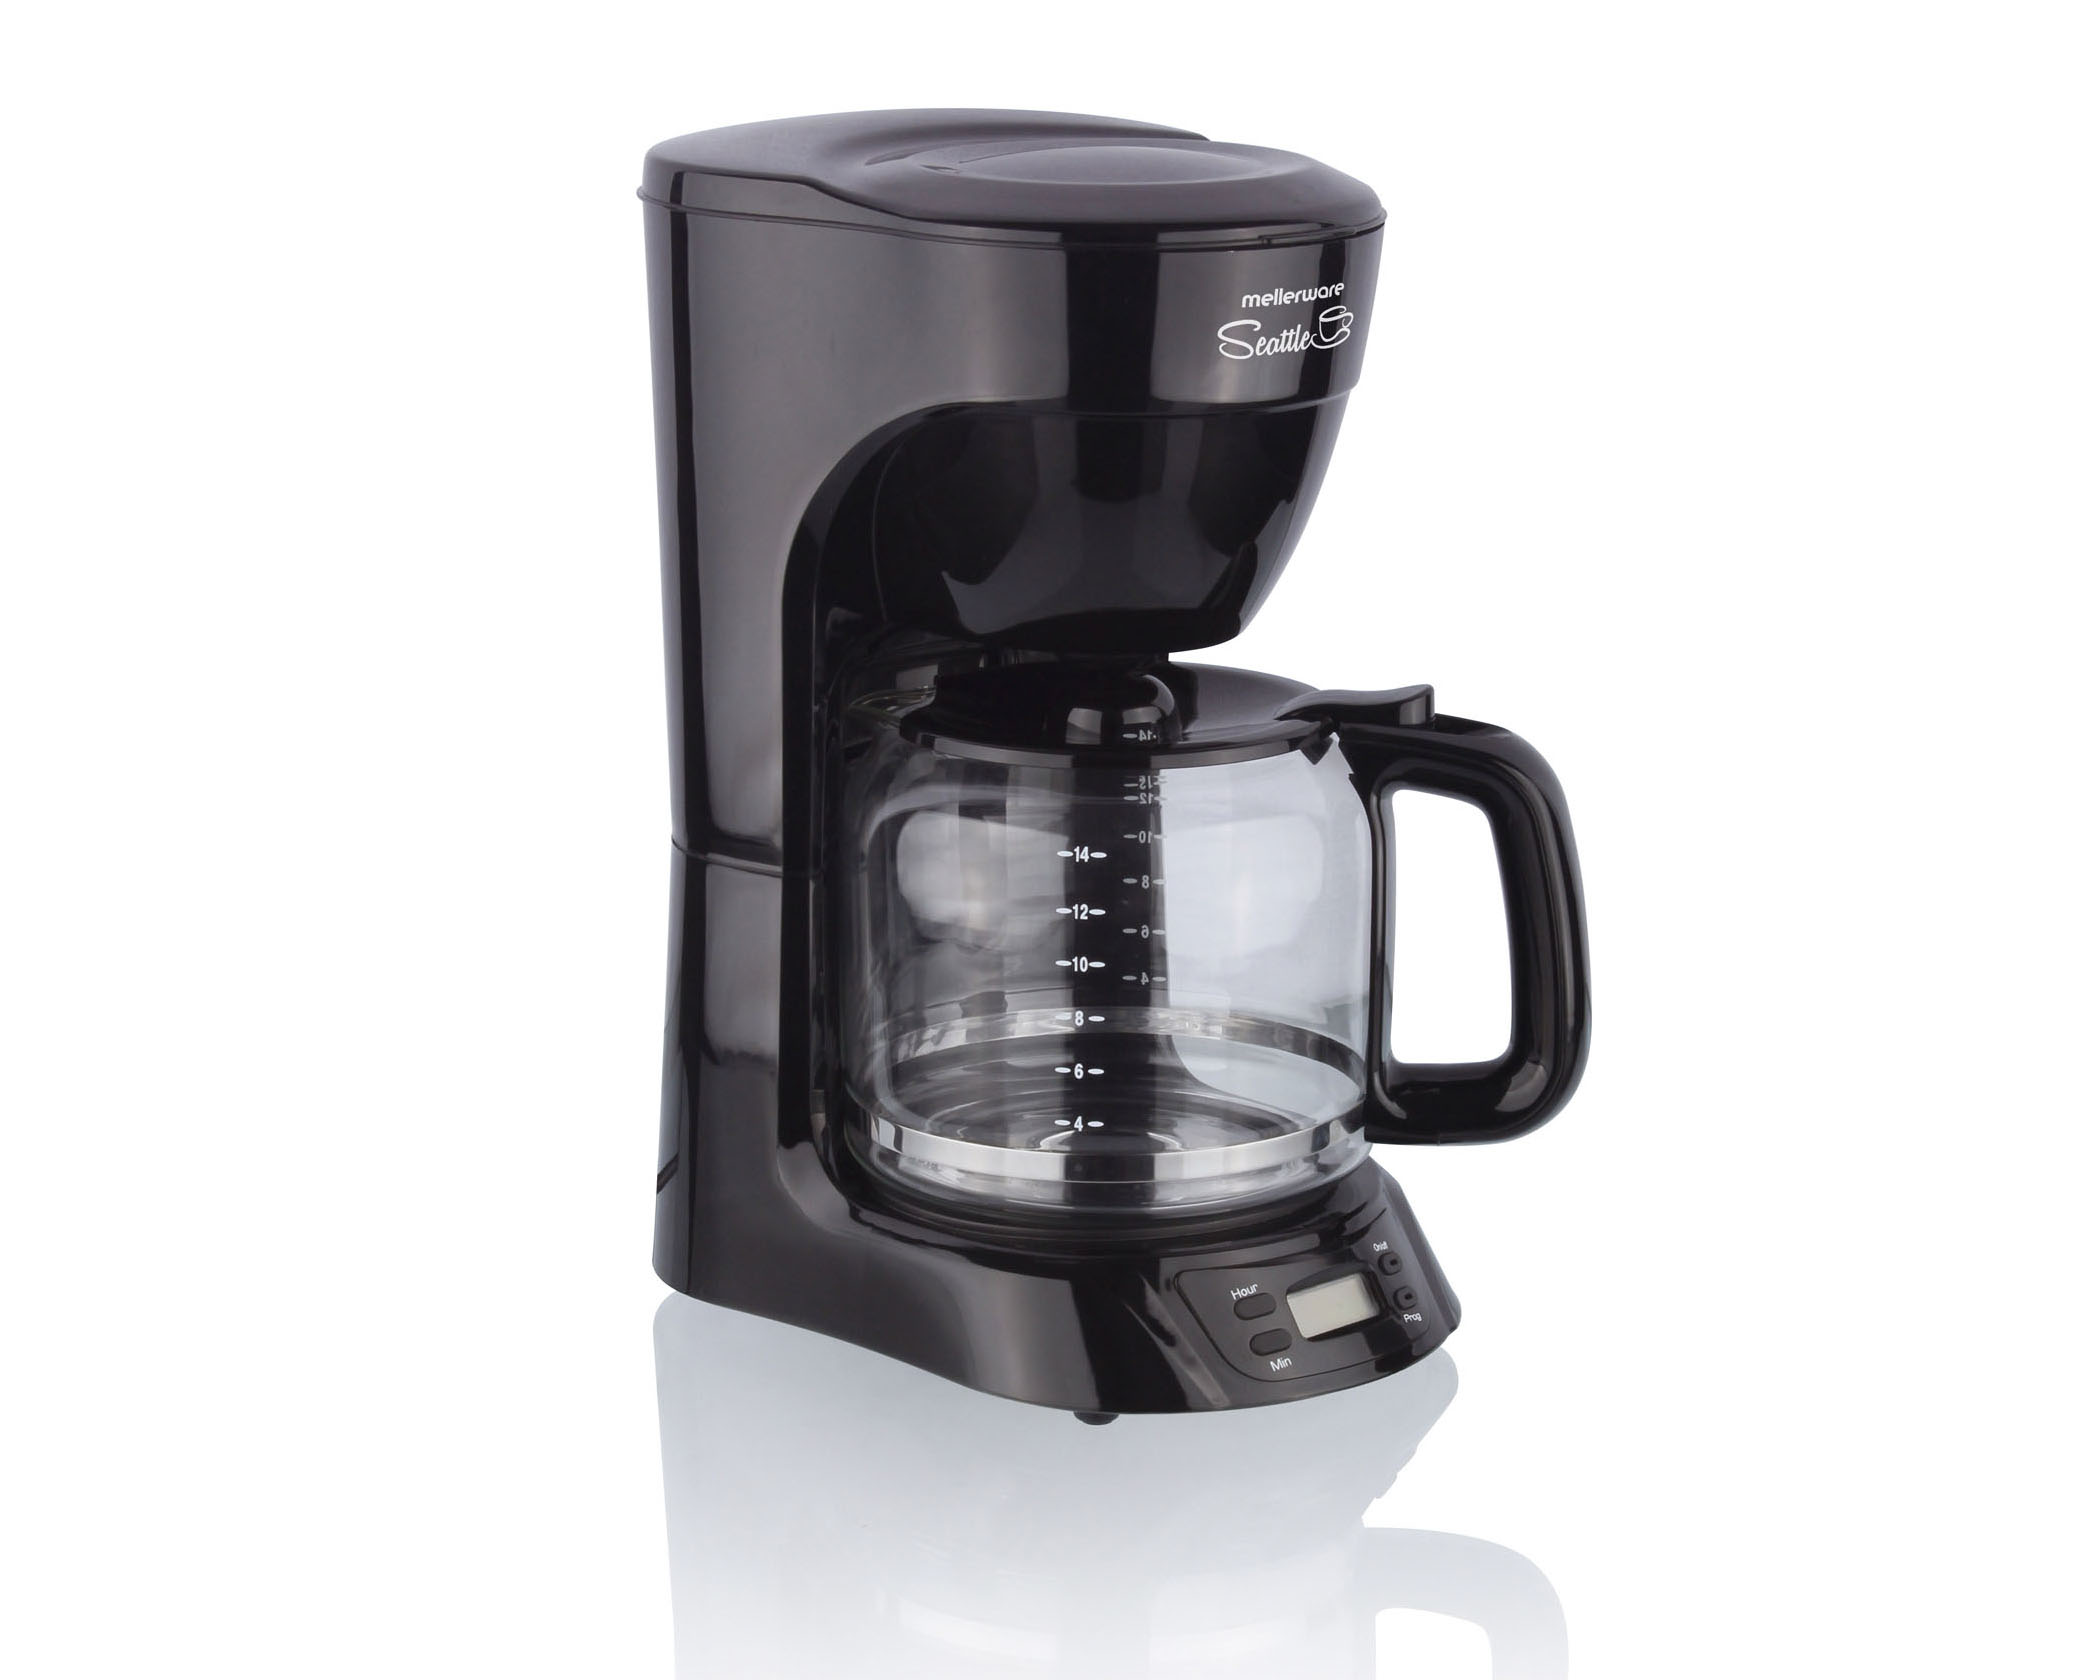 Seattle Drip Digital Filter Coffee Machine